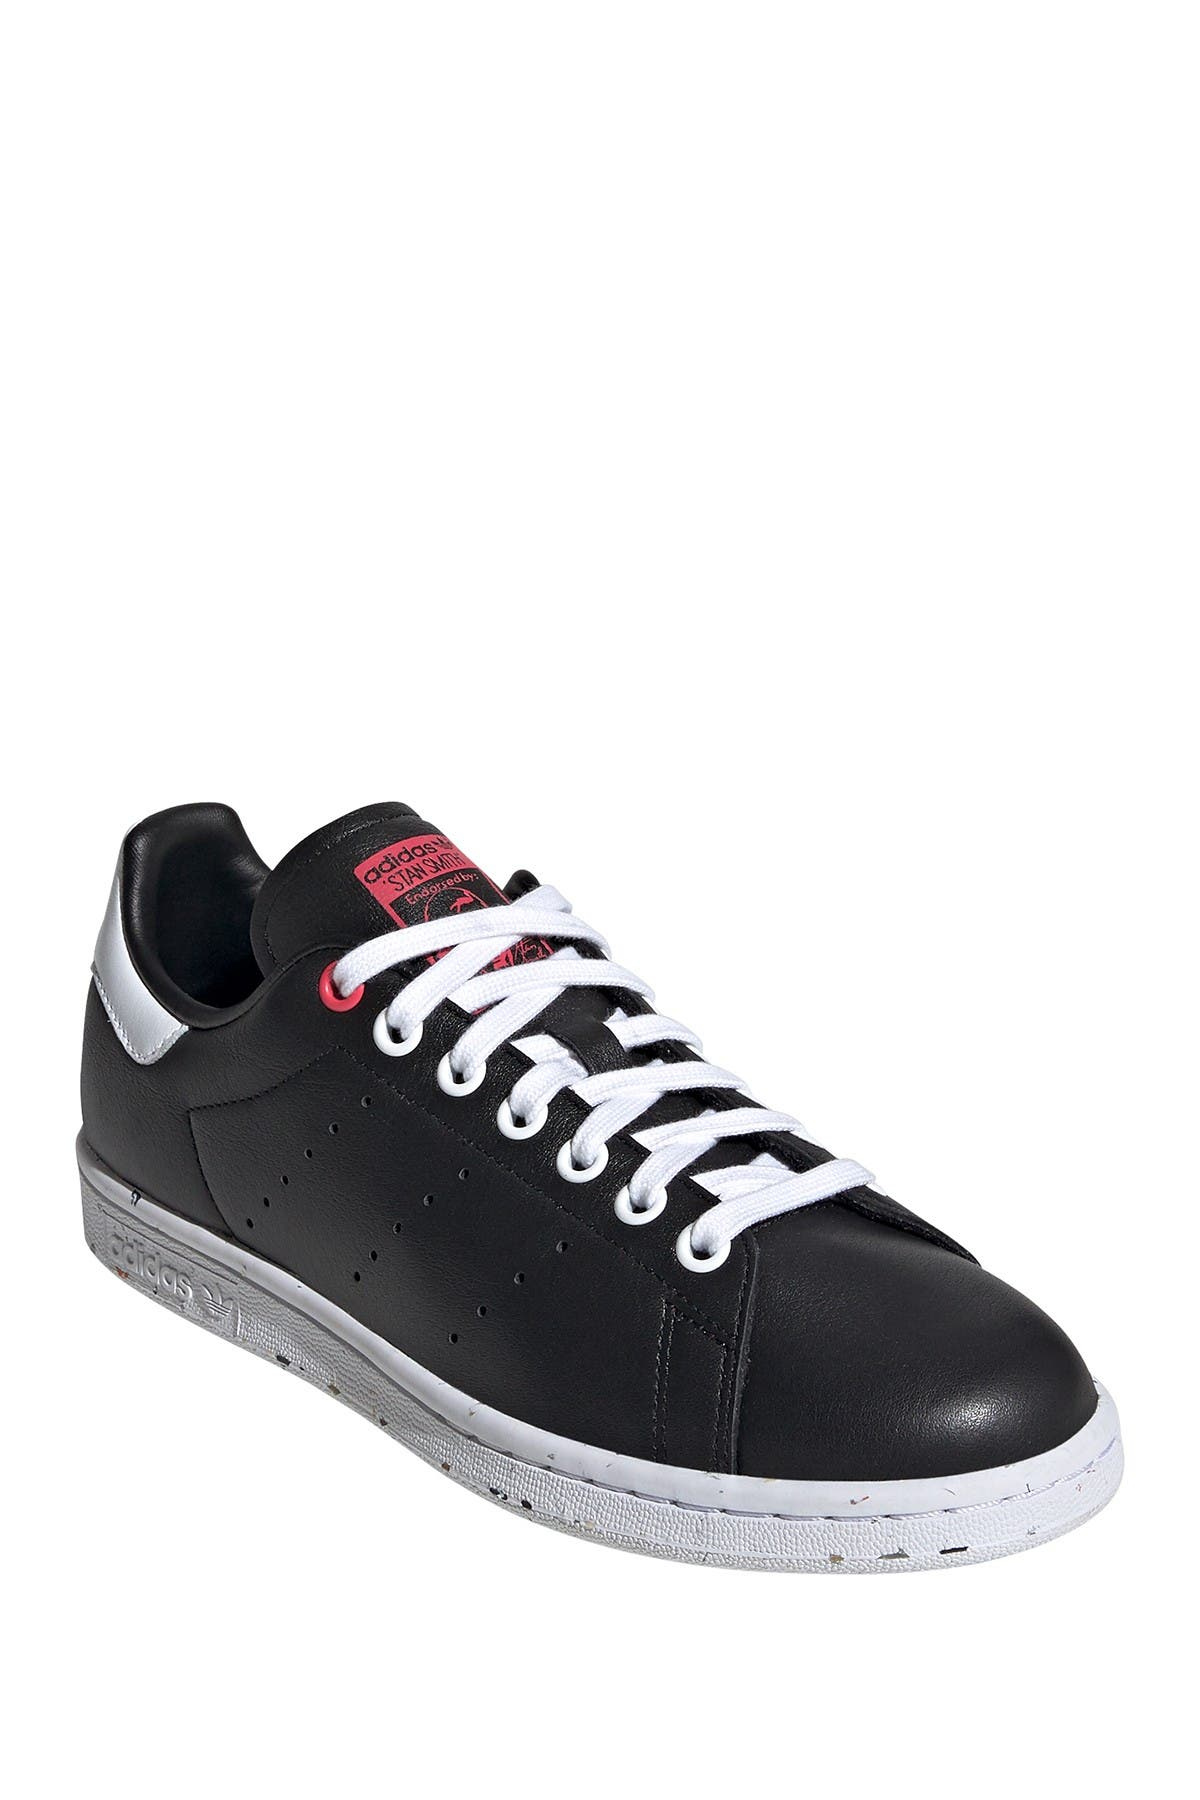 Image of adidas Stan Smith Sneaker